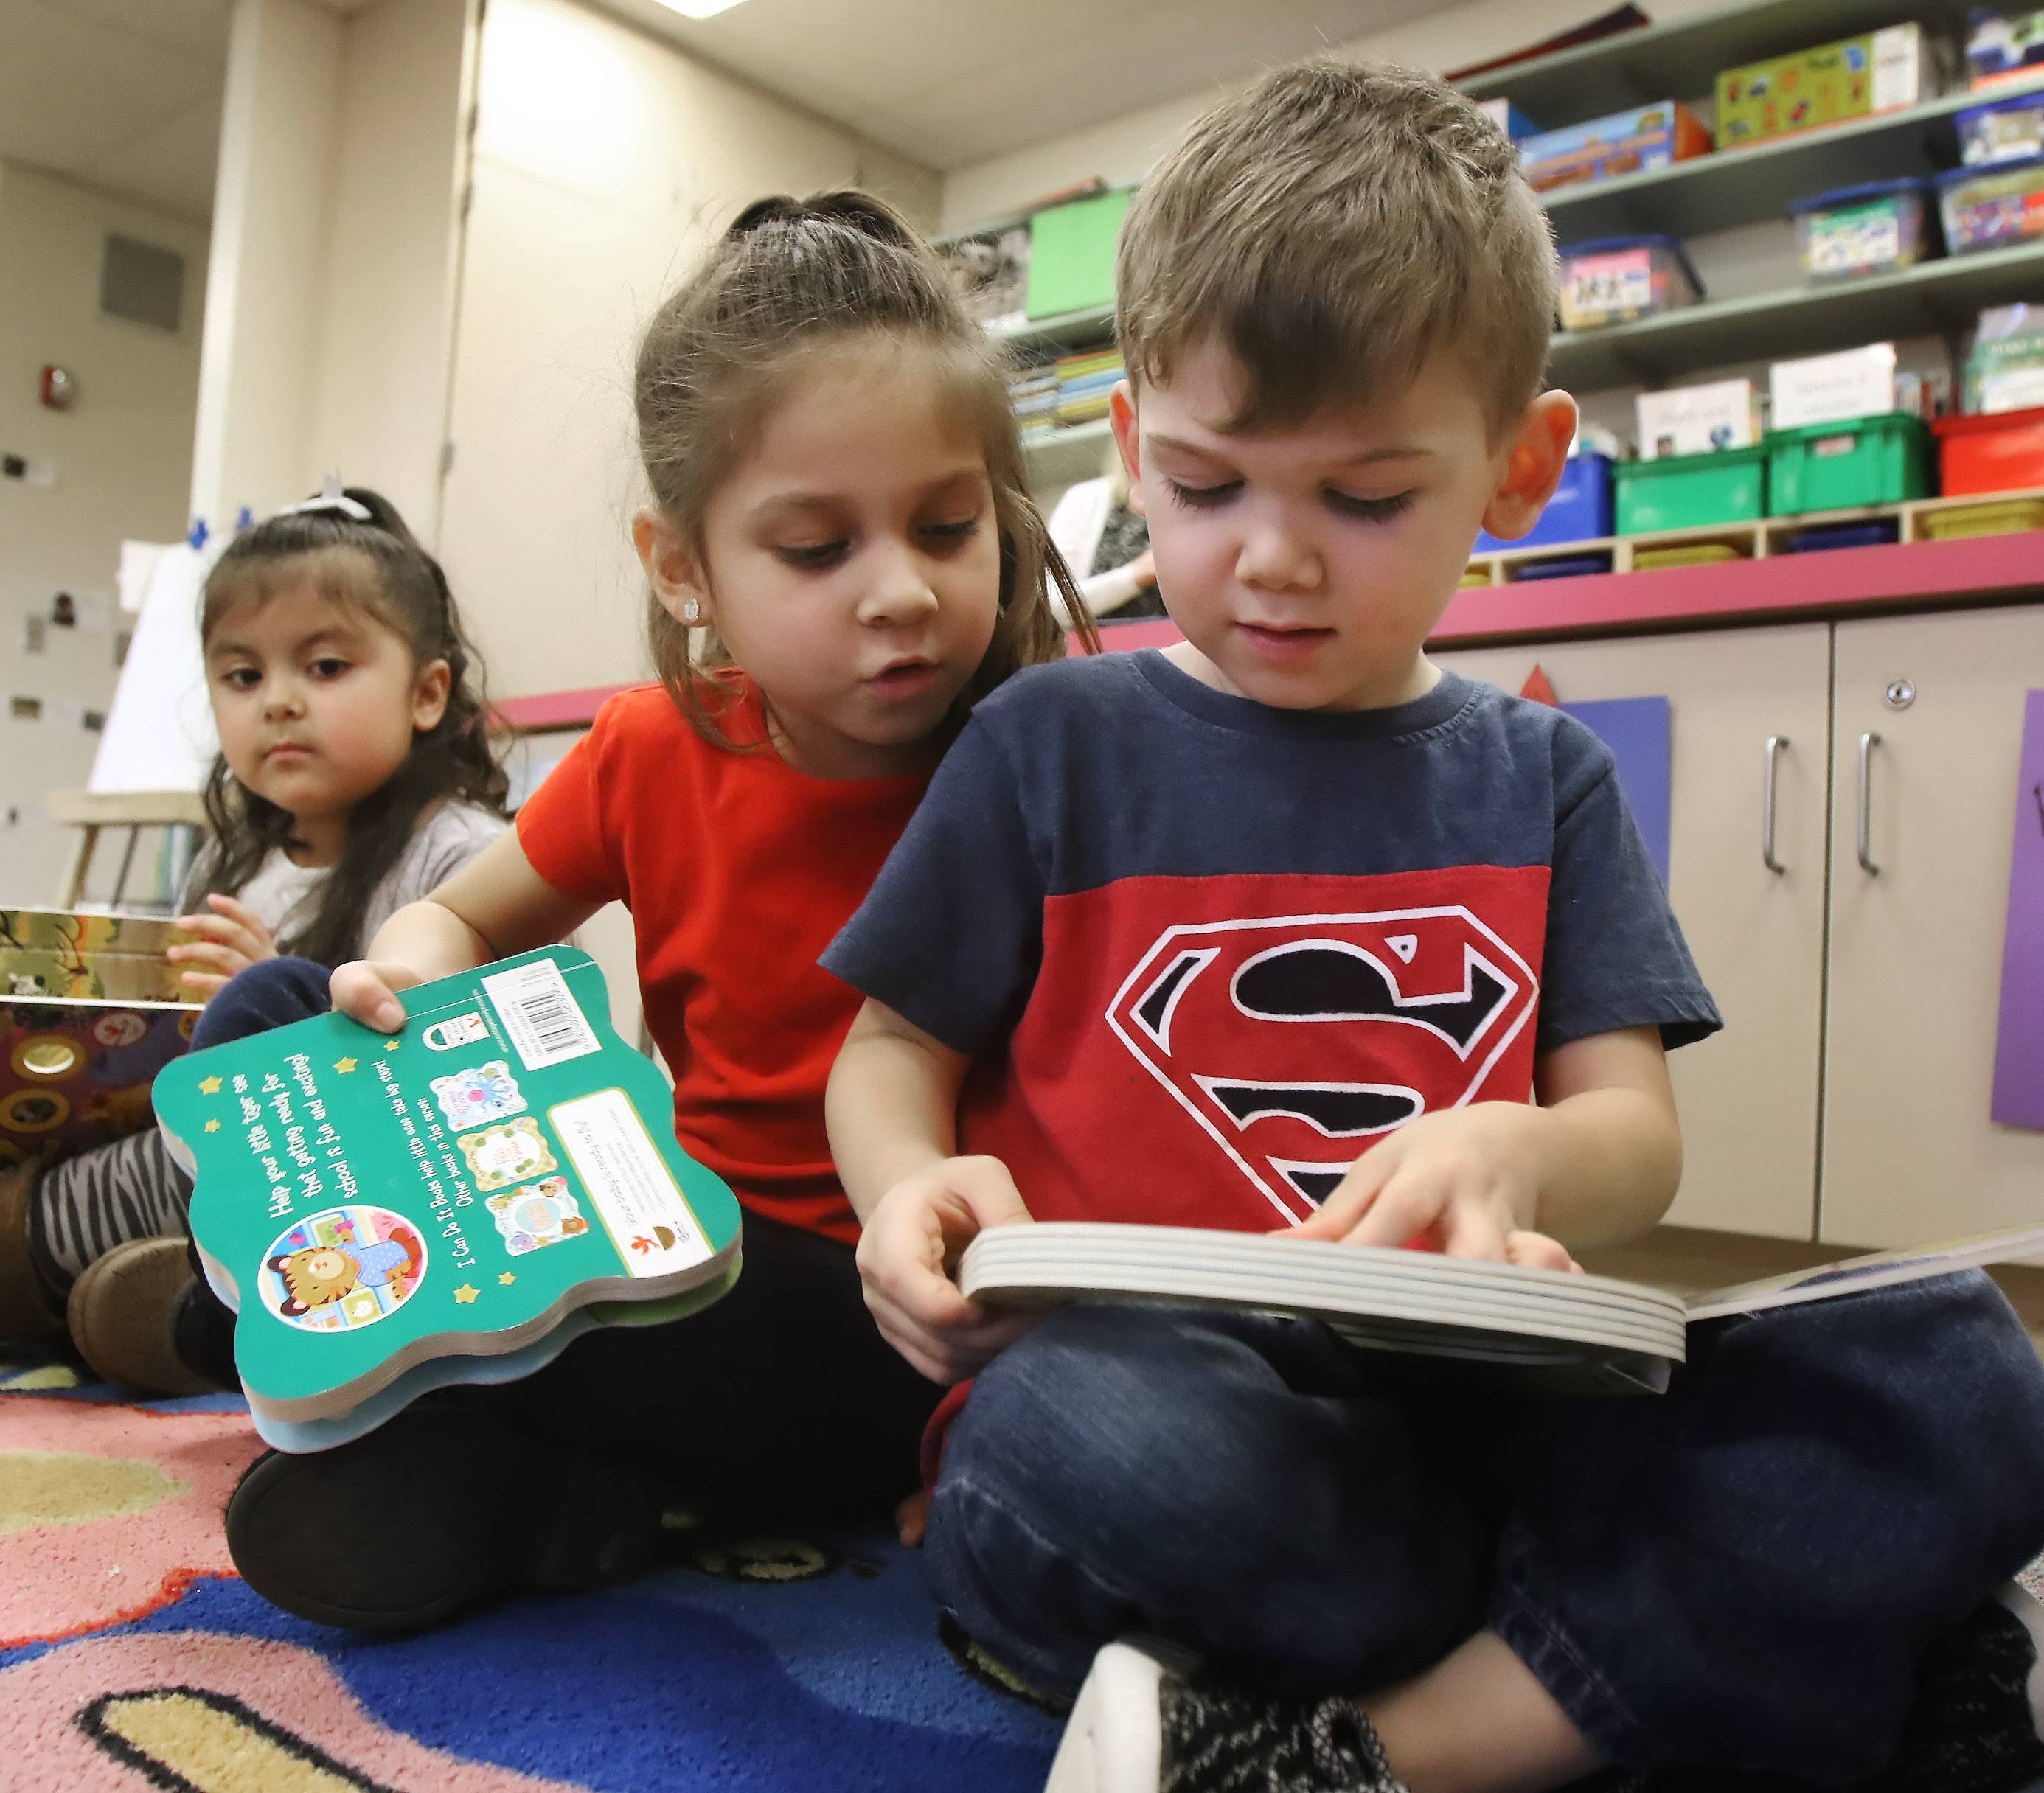 Preschoolers Mia Teo, left, and Eragon Ferreyra read new books Tuesday at the Round Lake Early Childhood Center. More than 50 books were donated to the center after teacher Kalie Skiles penned a guest column in the Daily Herald about the school's funding struggles.